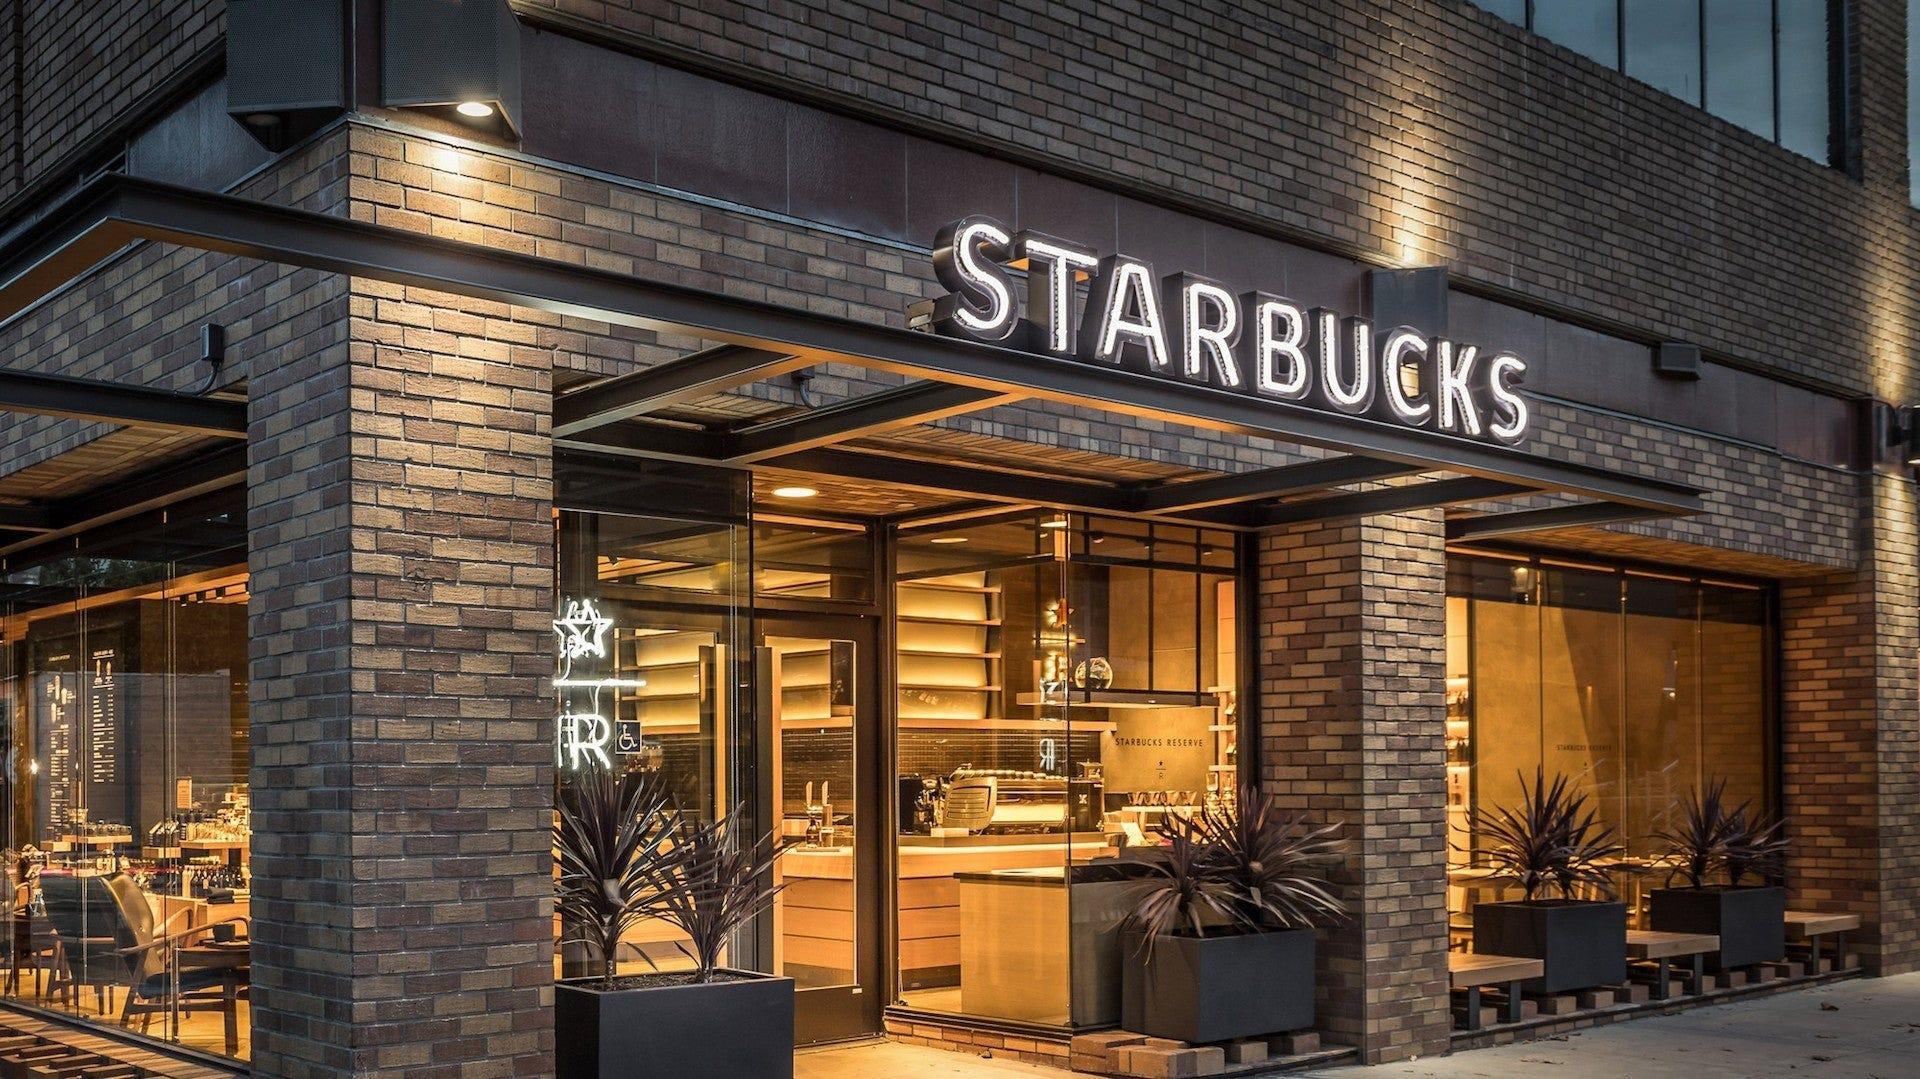 Fourth of July restaurants: Starbucks, McDonald's, Chick-fil-A open